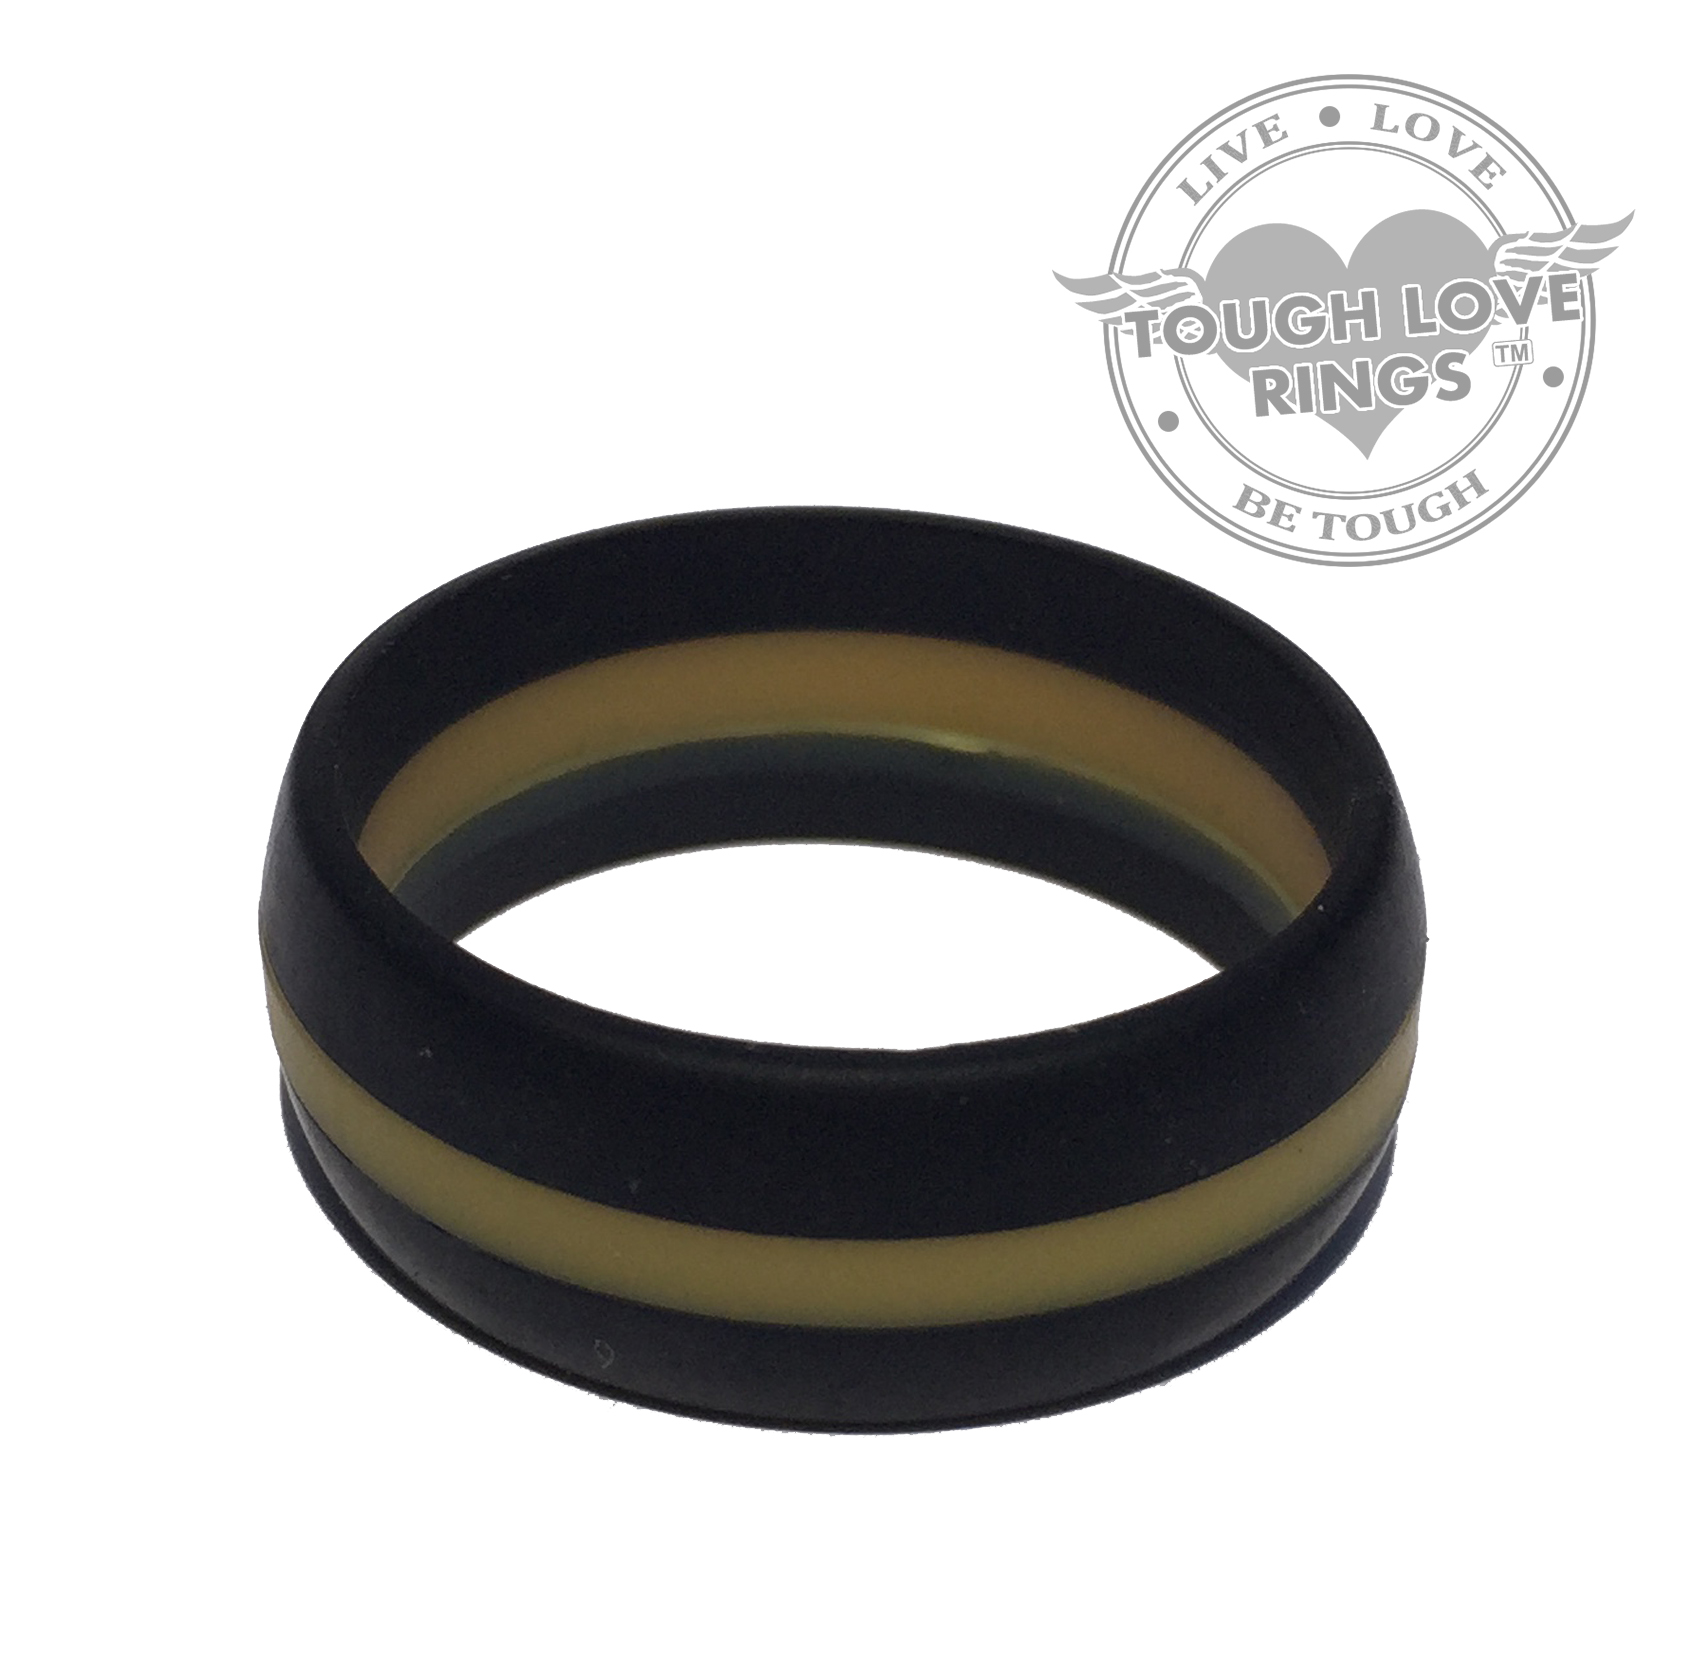 rings uhruyiuho ring thunderfitrings silicone men gold products classic s